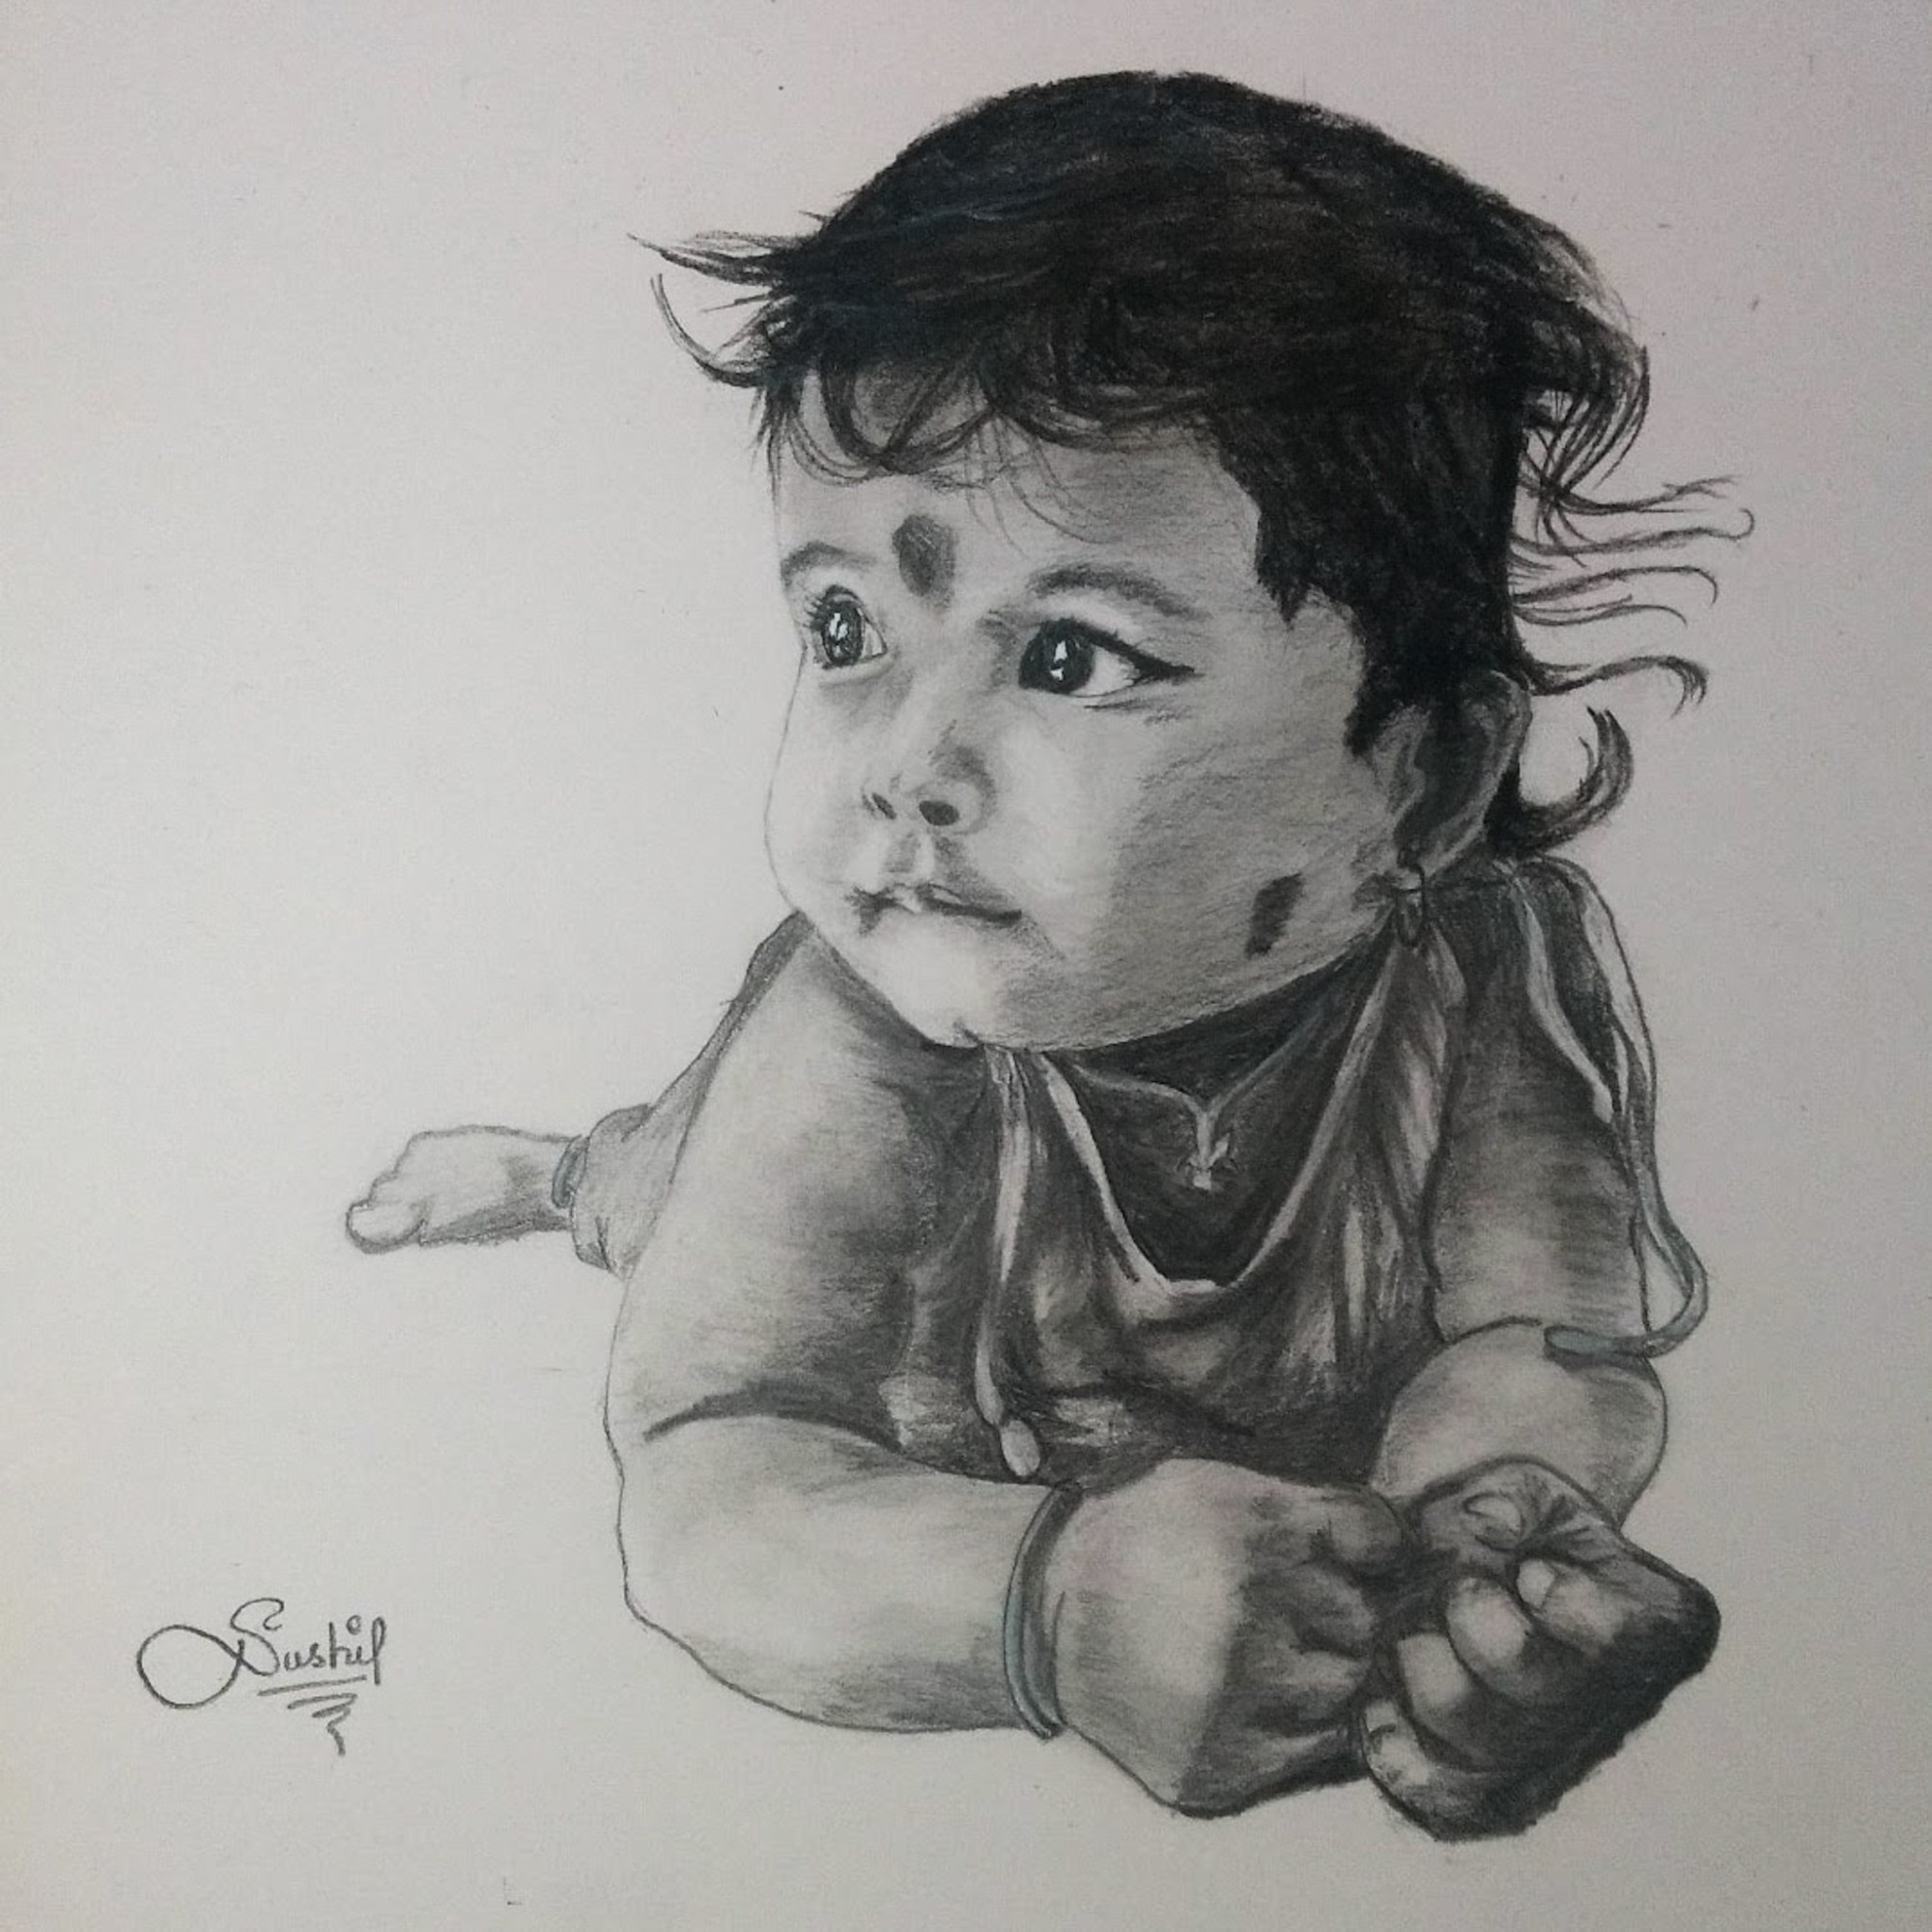 I will draw amazing realistic pencil portrait from a photo